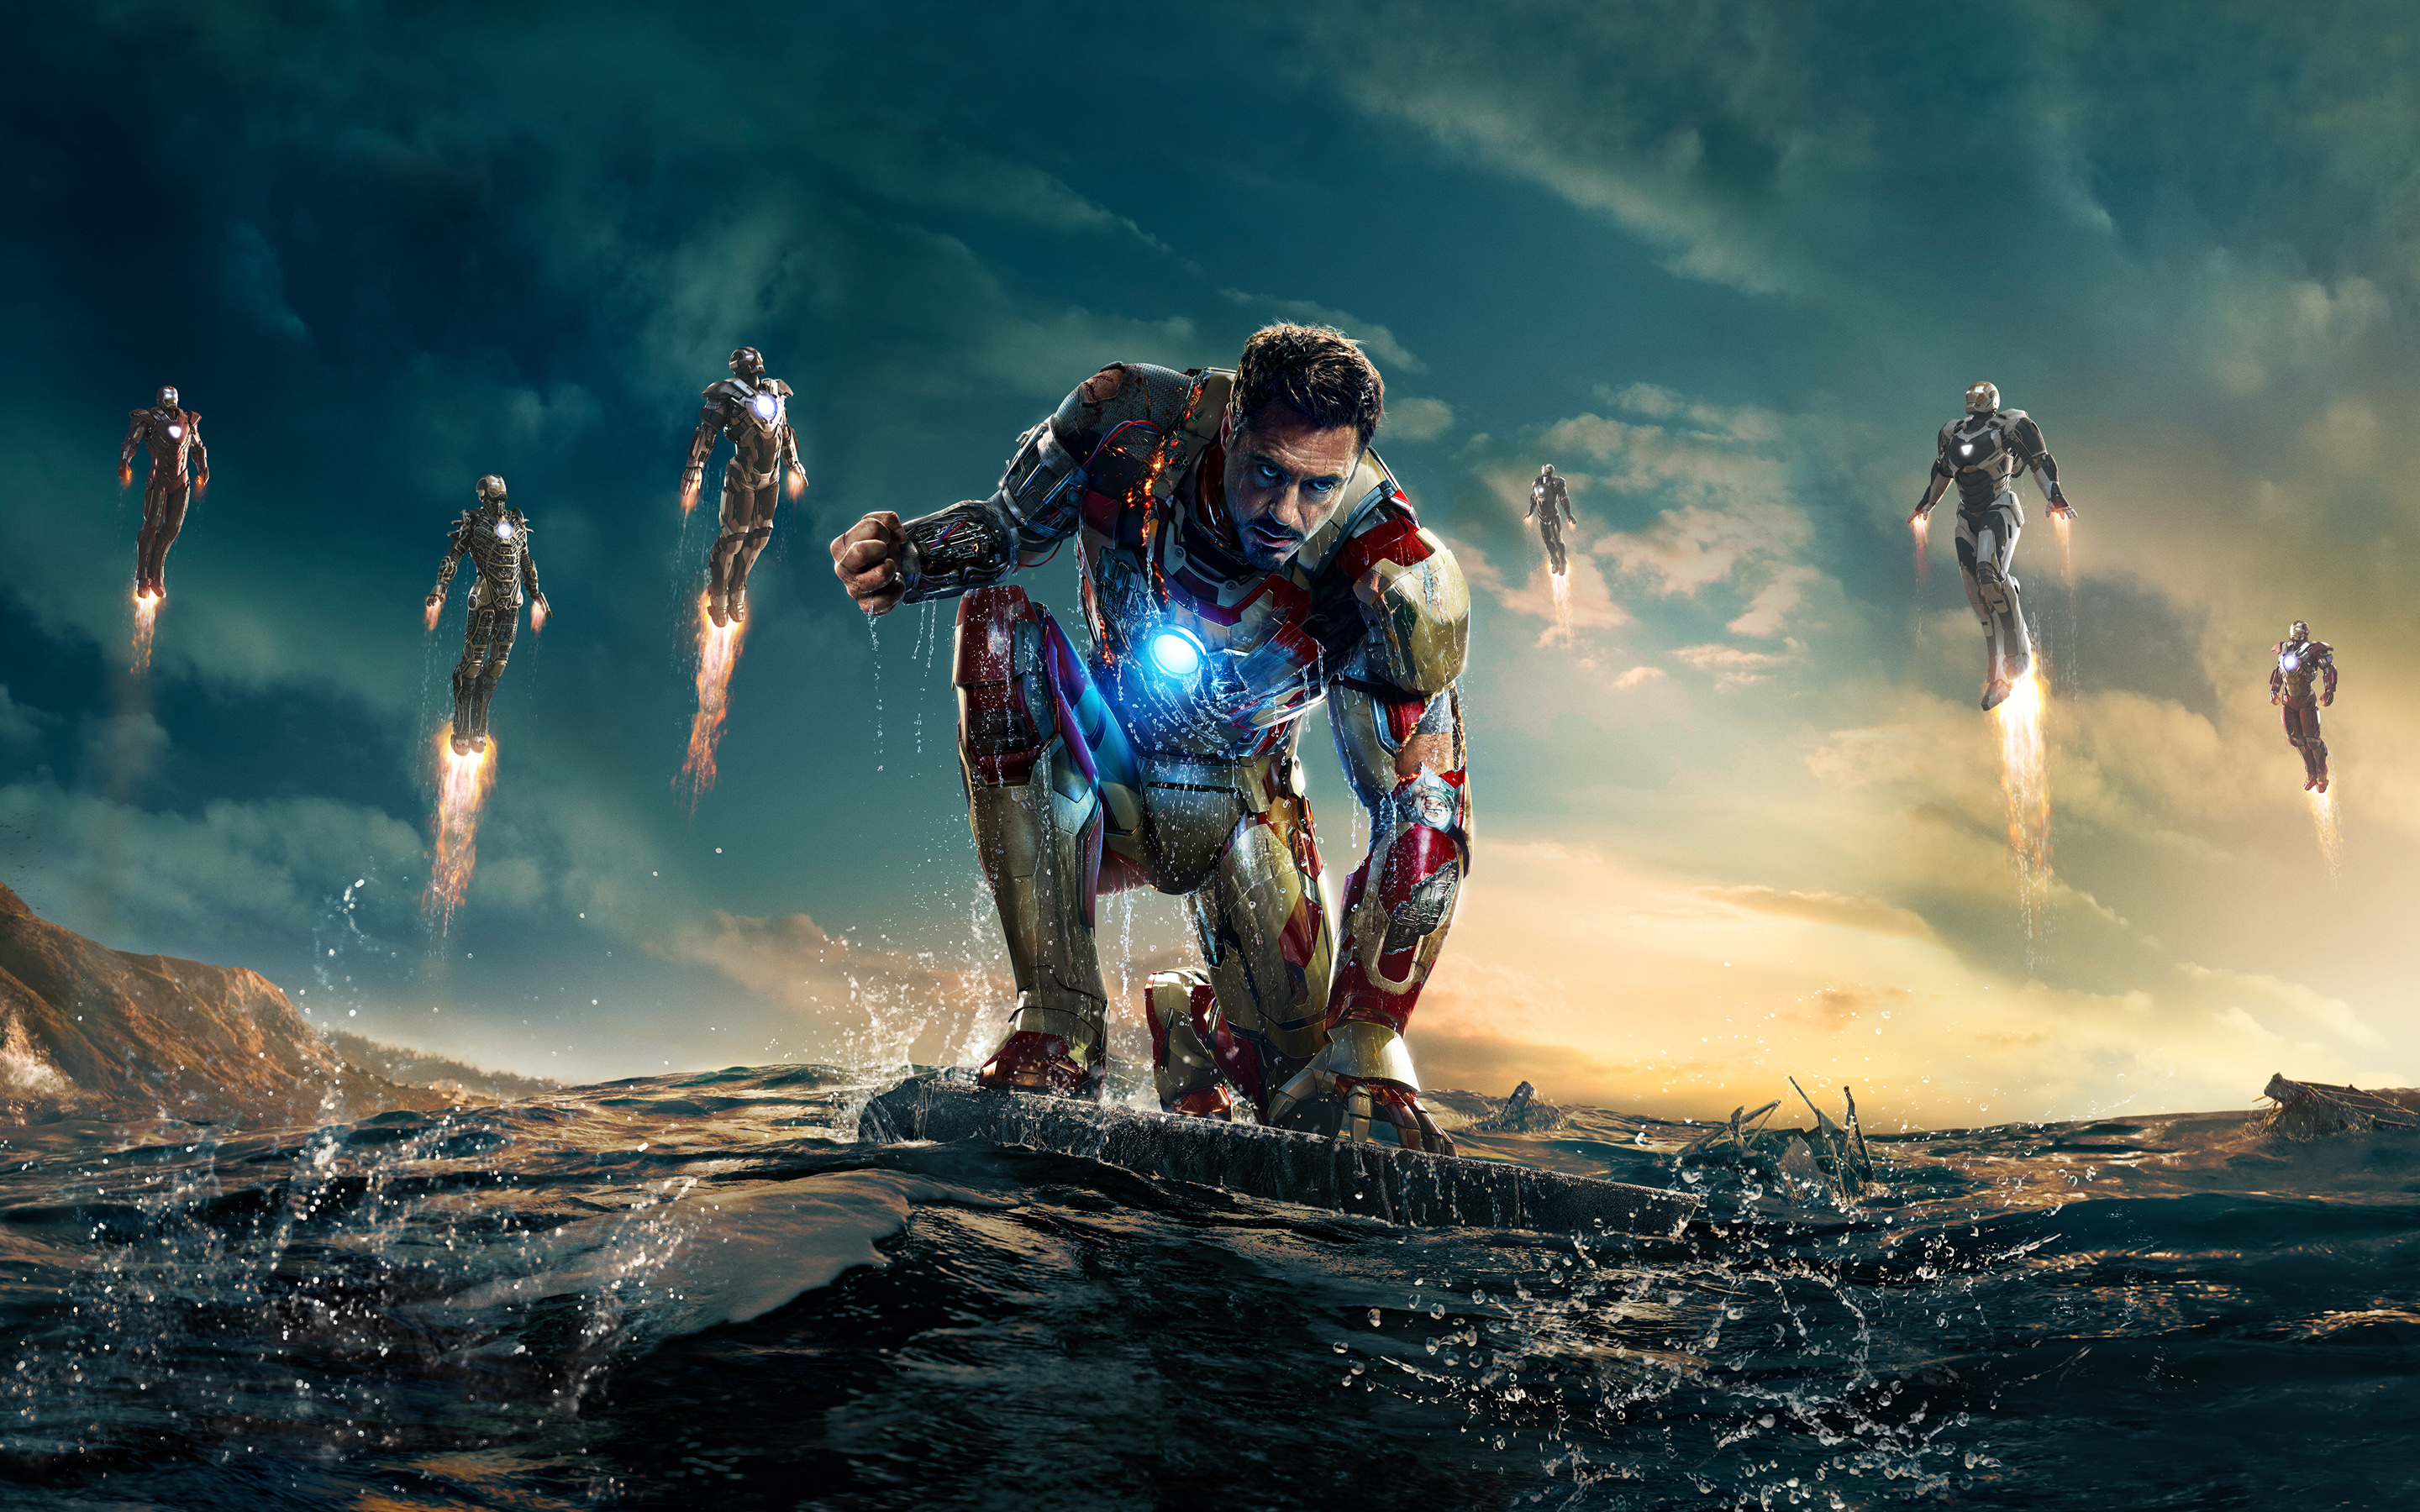 Iron man 3 live wallpaper hd free download of android version.